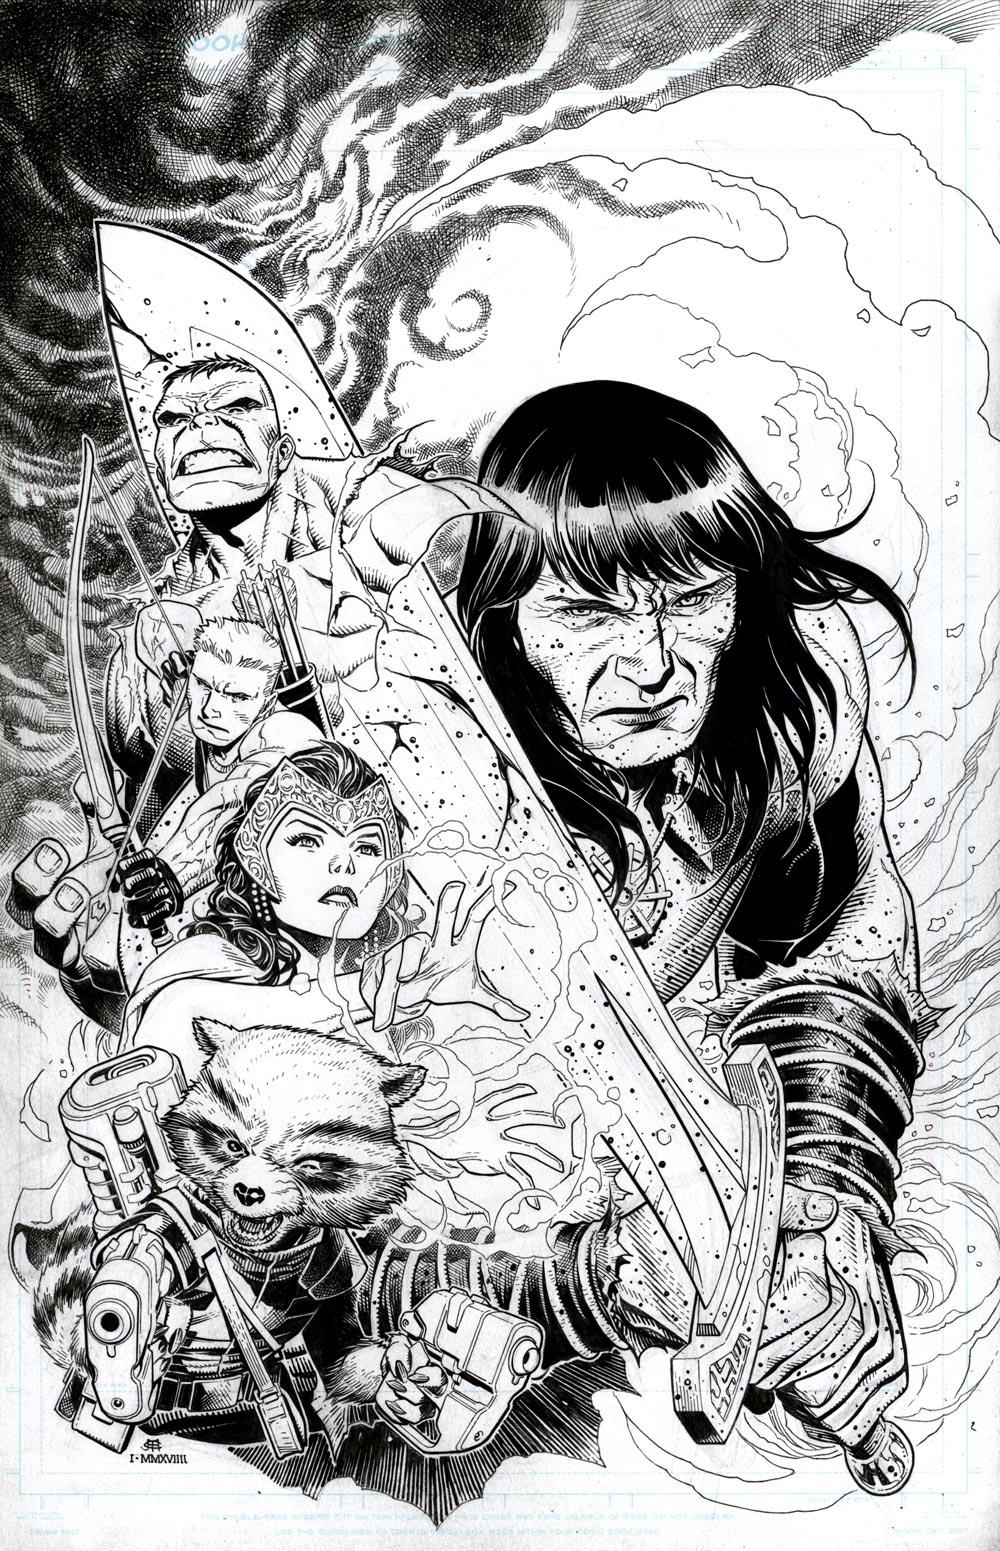 Image of AVENGERS-NO ROAD HOME #5 Cover